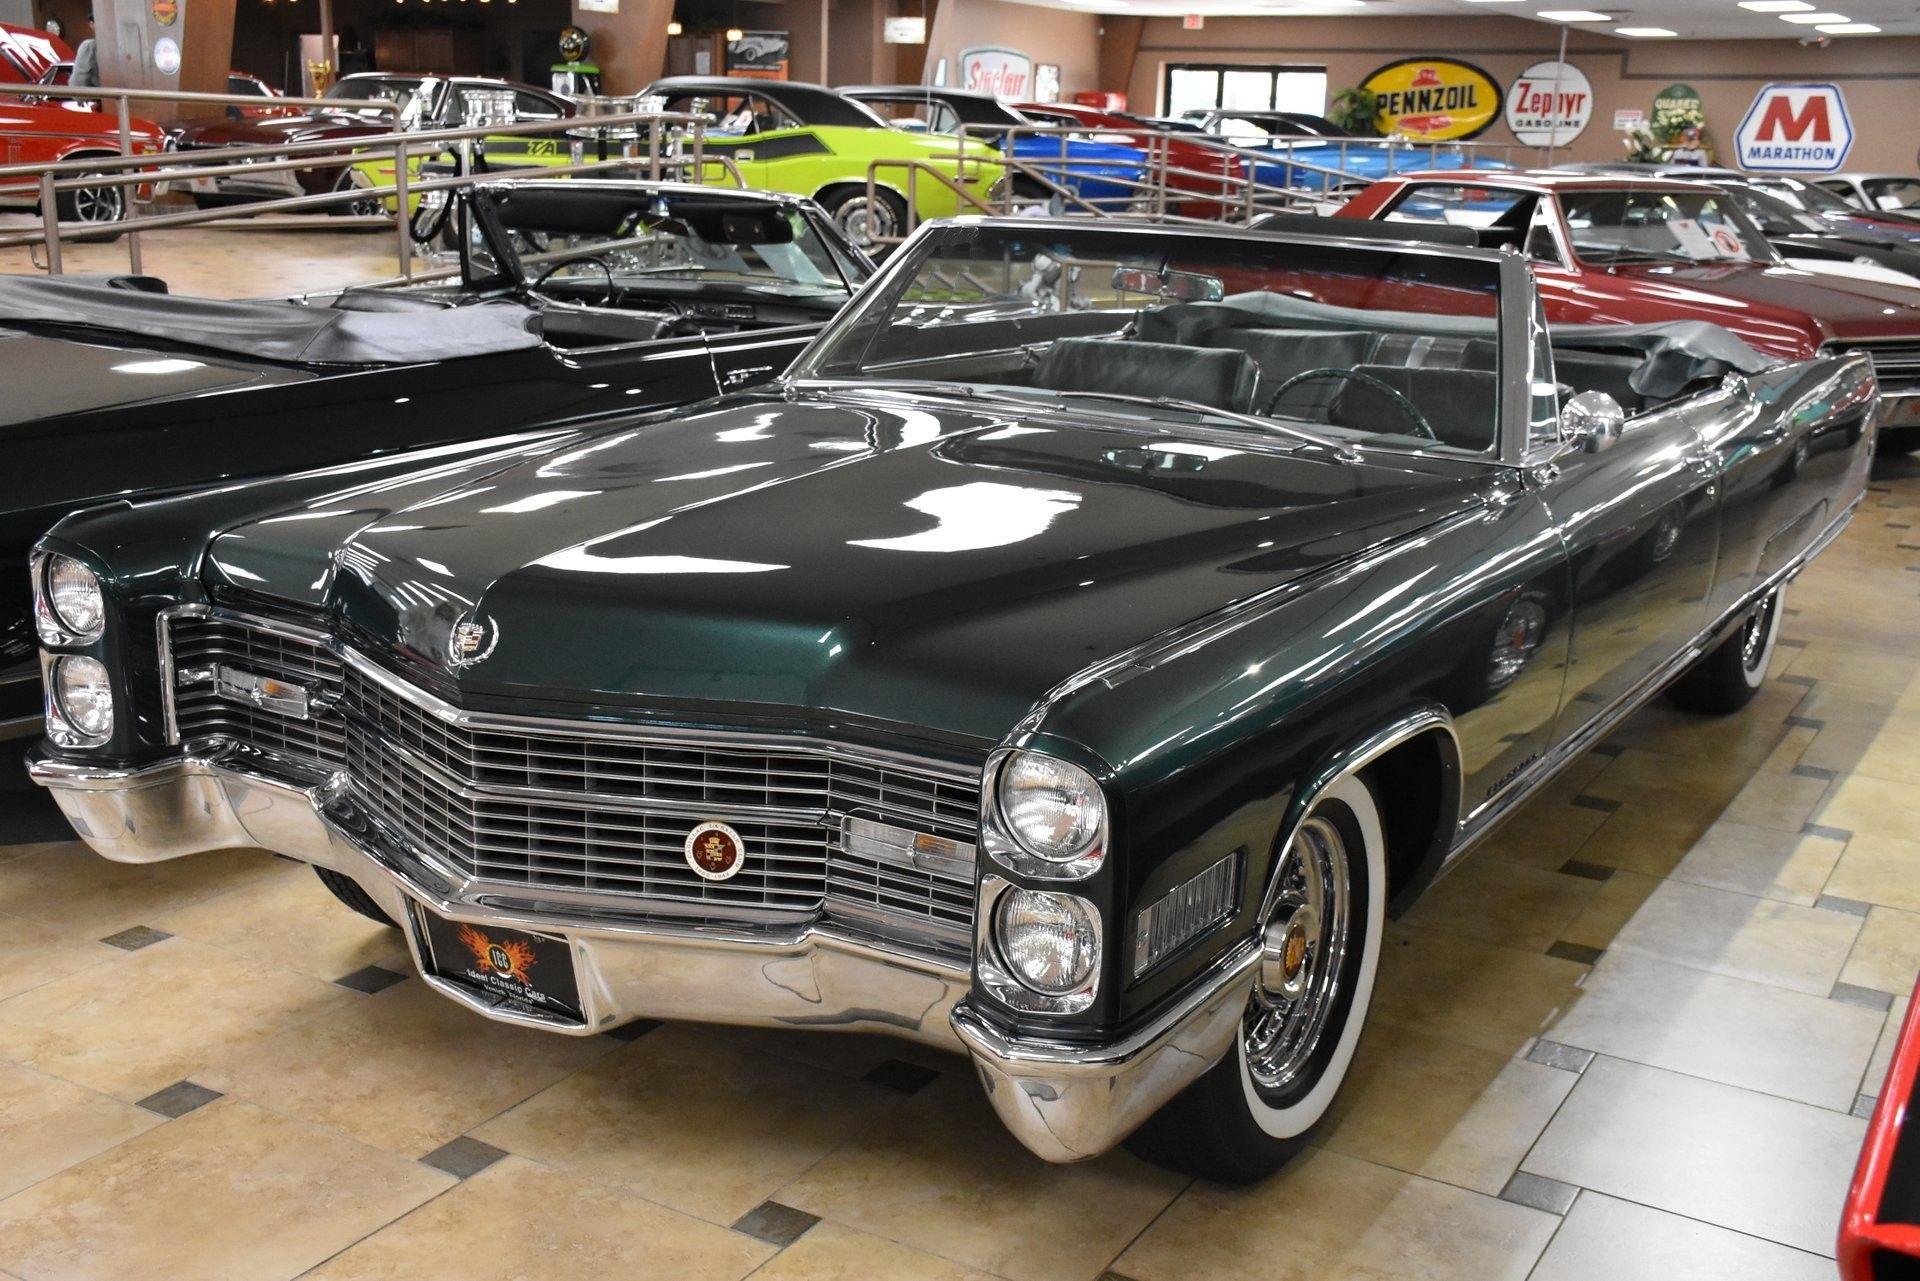 Pin By Clyde Brokaw On Classic Muscle Cars Camaro Chevelle Nova In 2020 Muscle Cars Camaro Classic Cars Muscle Muscle Cars